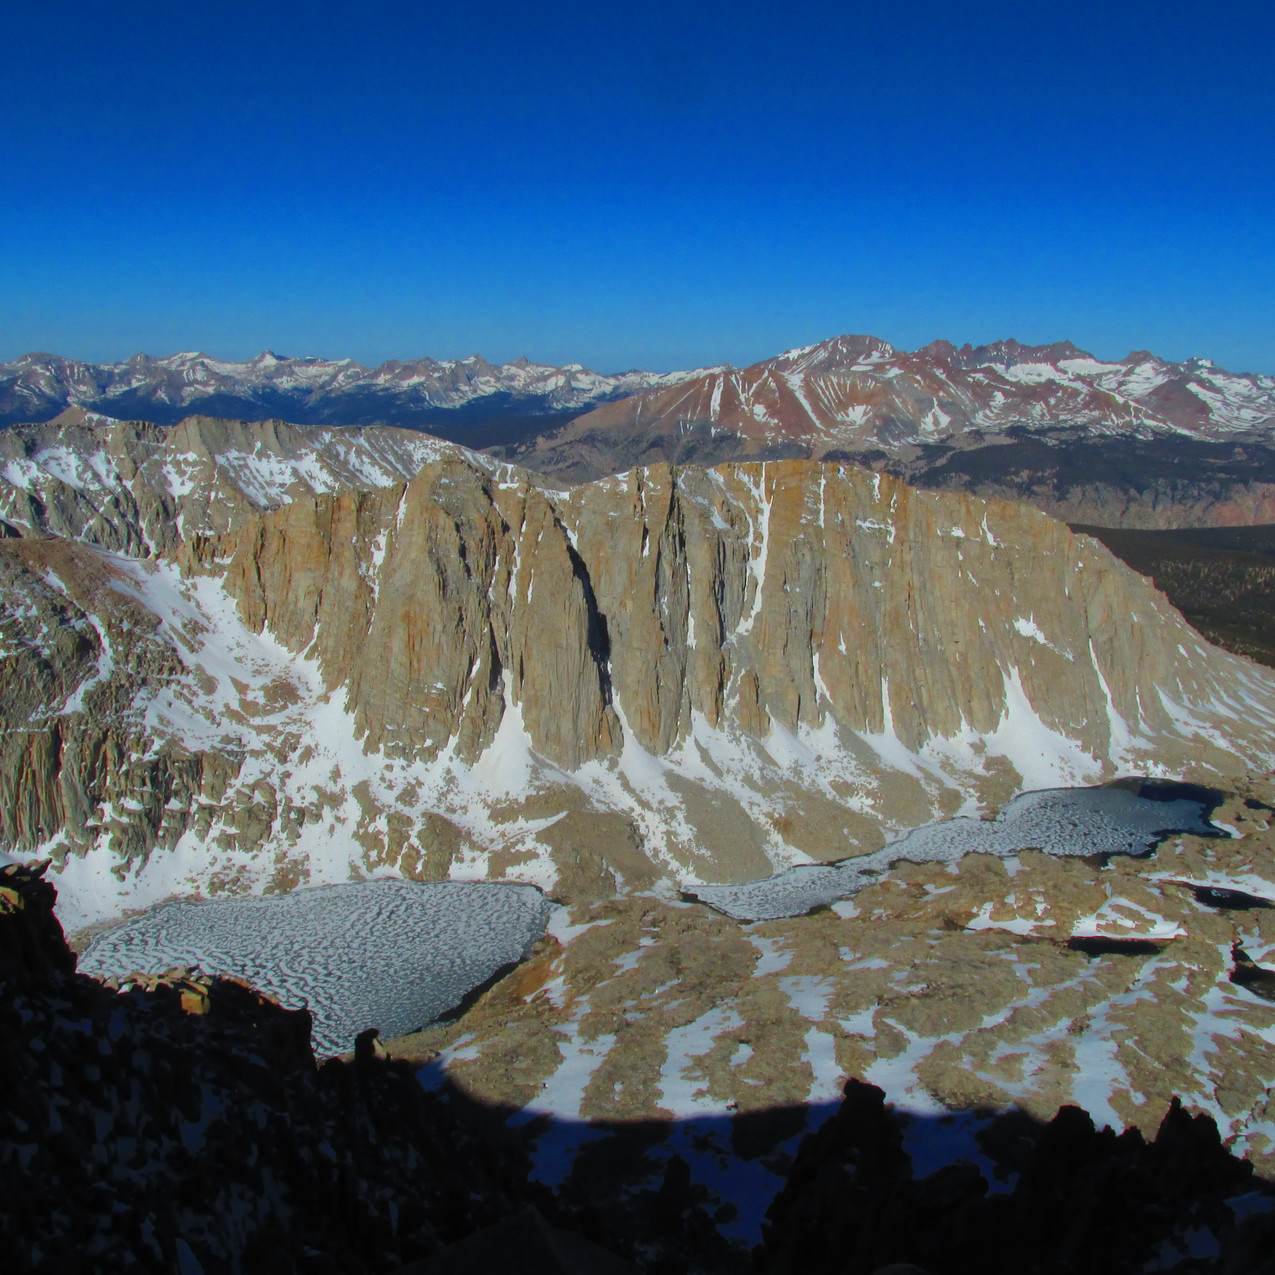 Views like this made the hike to the top of Mt. Whitney even better.